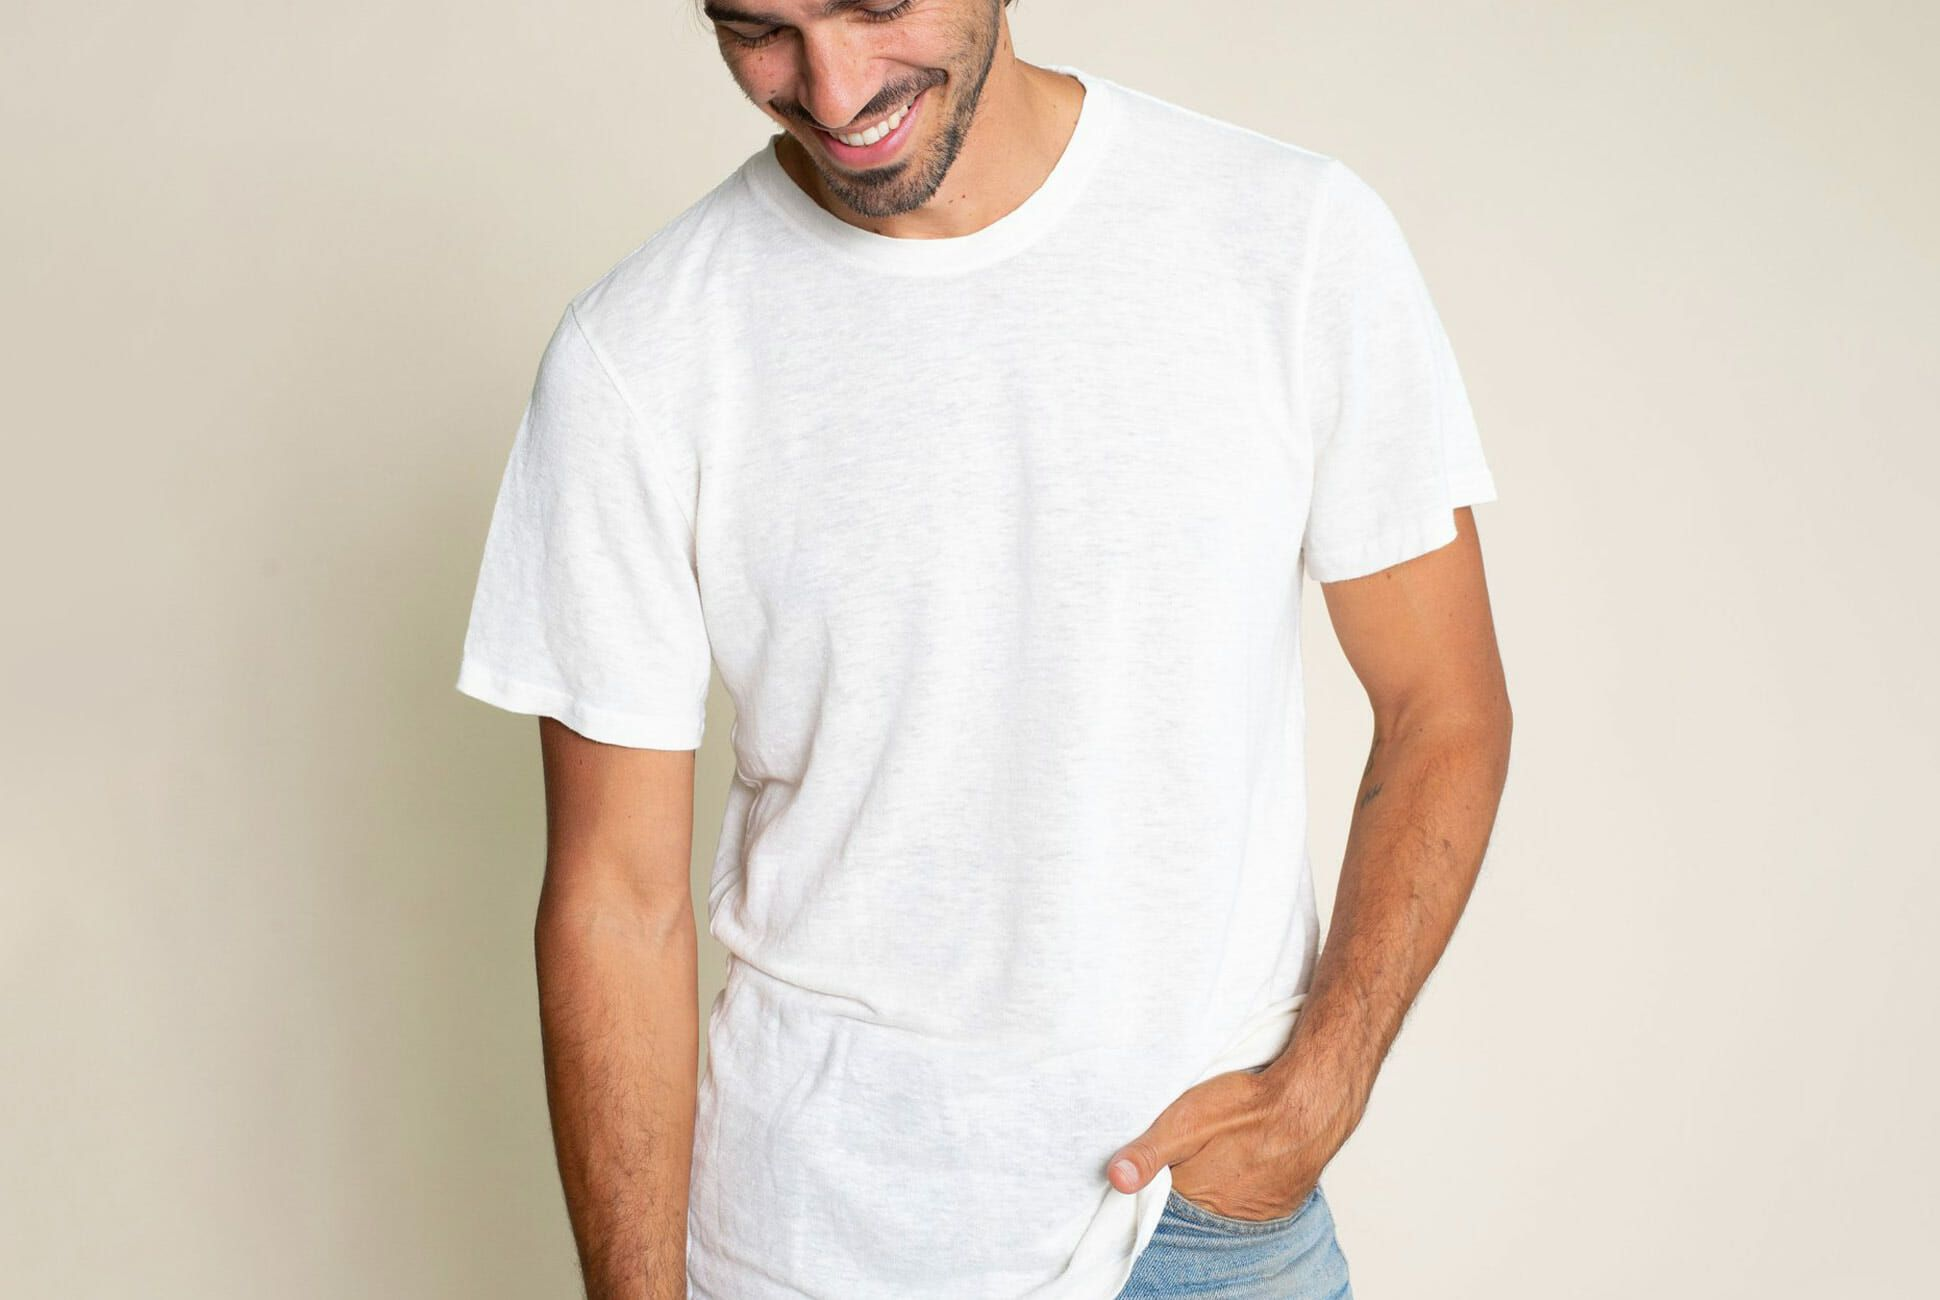 Miraculous The 10 Best Basic T Shirts For Men Gear Patrol Caraccident5 Cool Chair Designs And Ideas Caraccident5Info